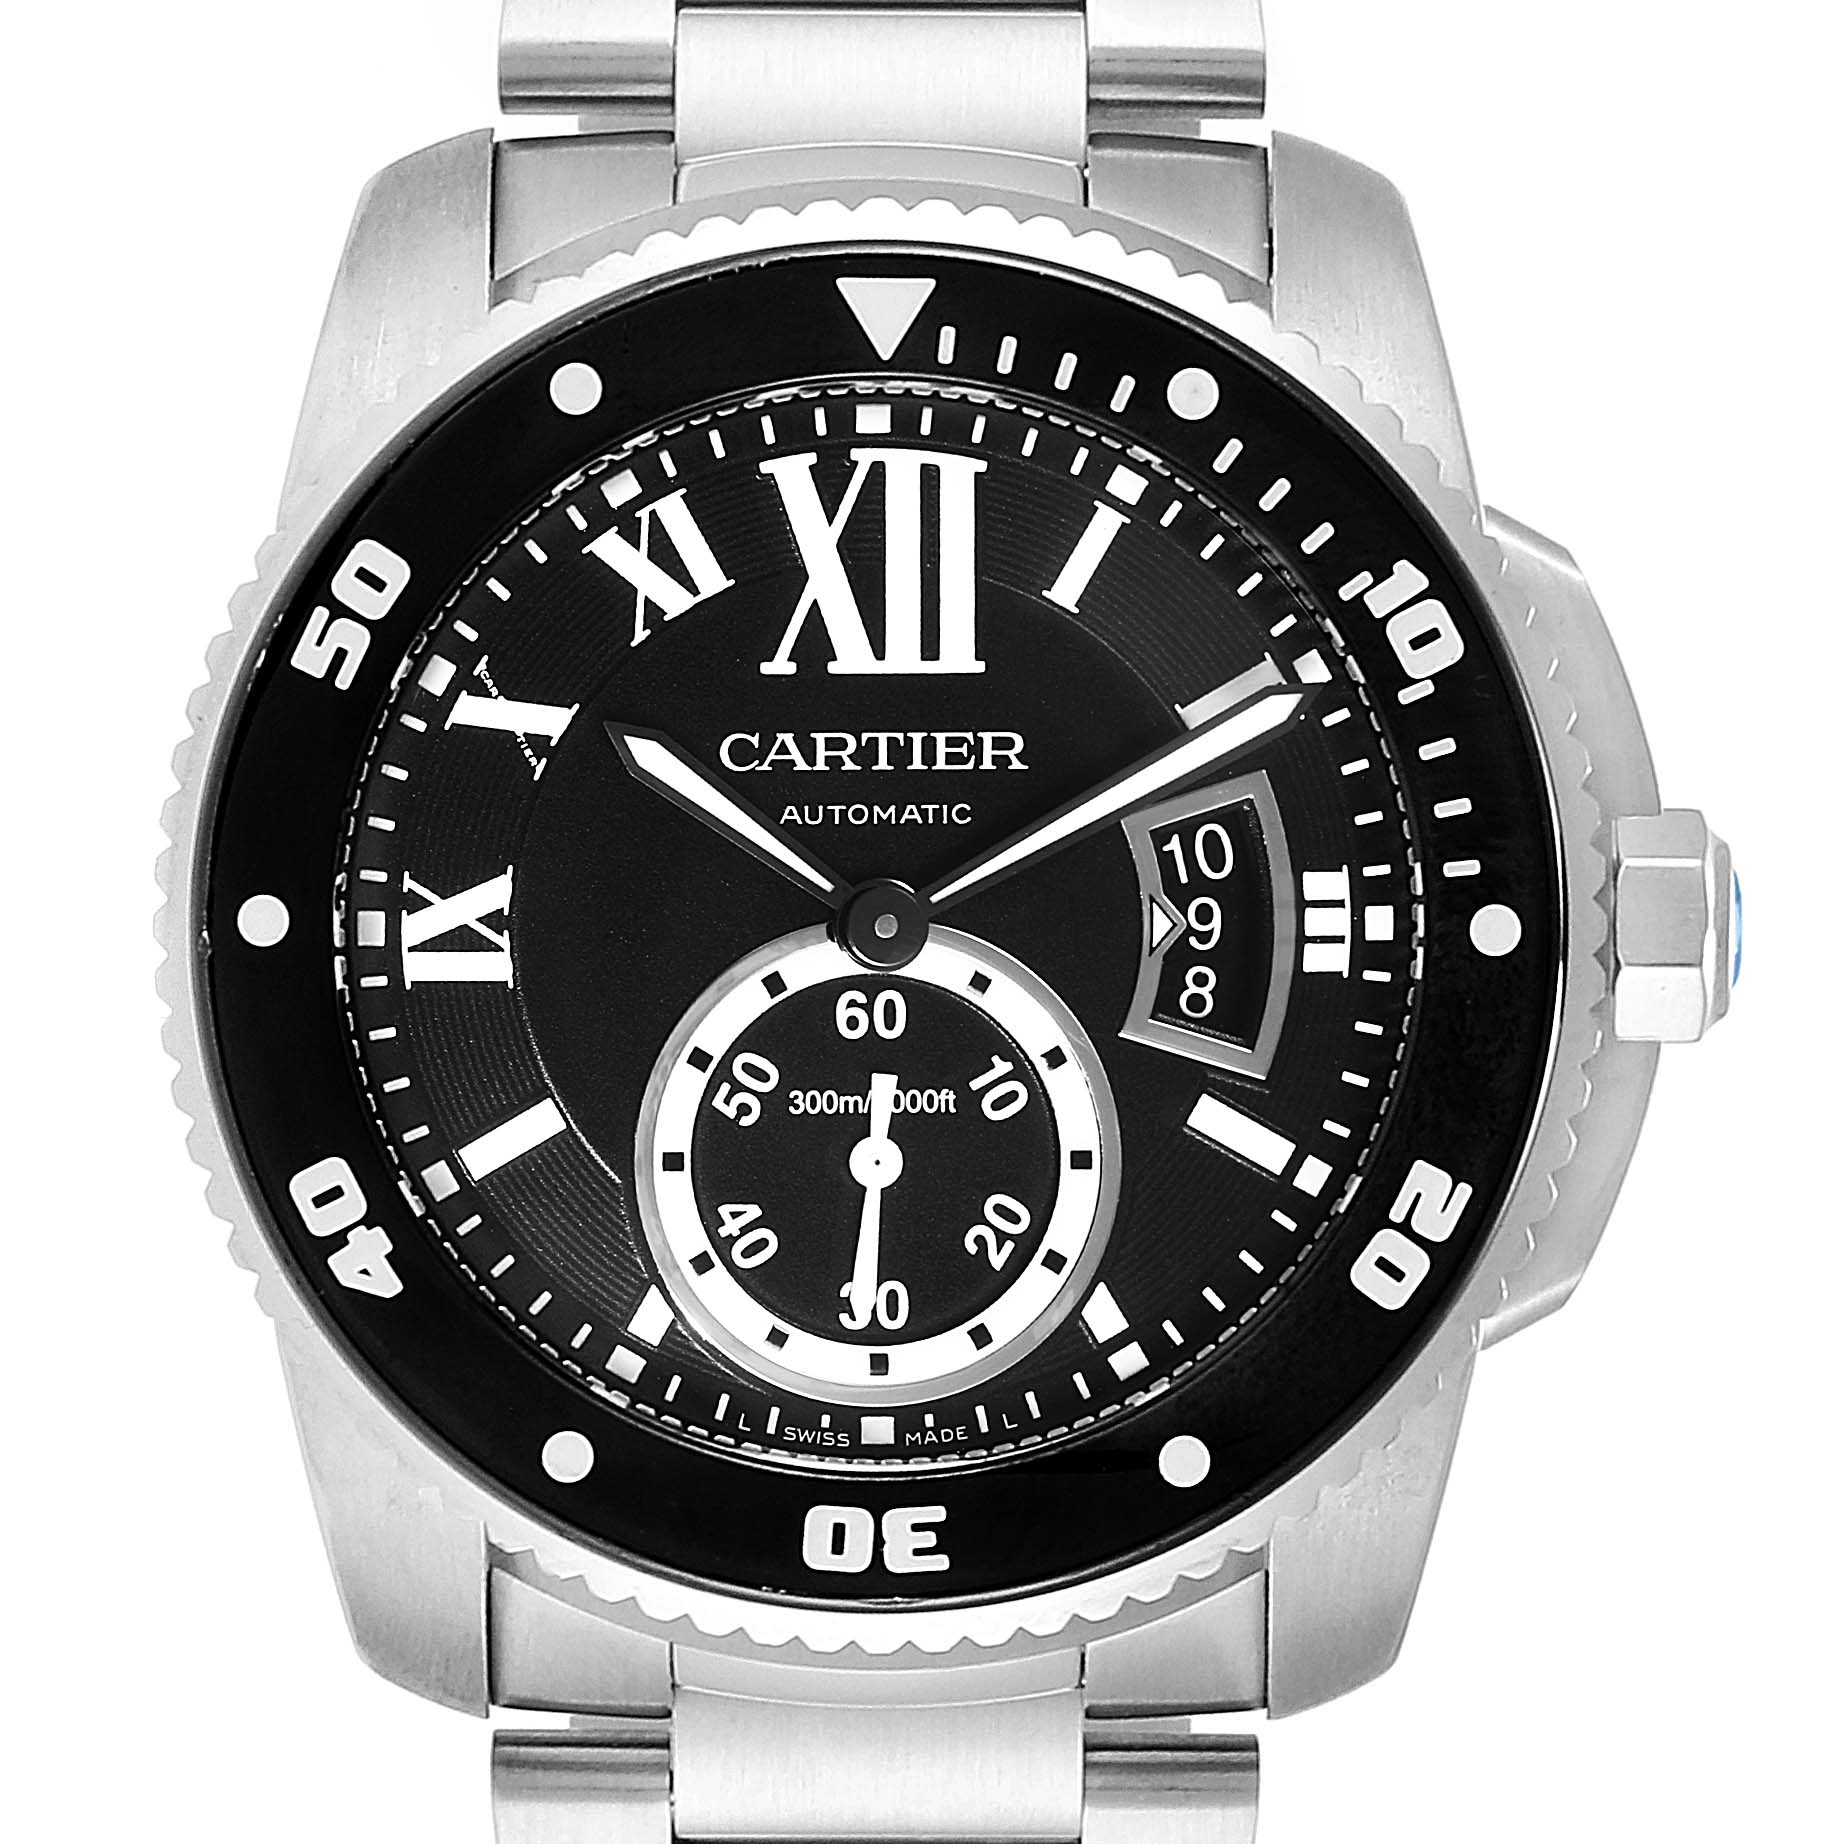 Cartier Calibre Black Dial Automatic Steel Mens Watch W7100057 Box Card